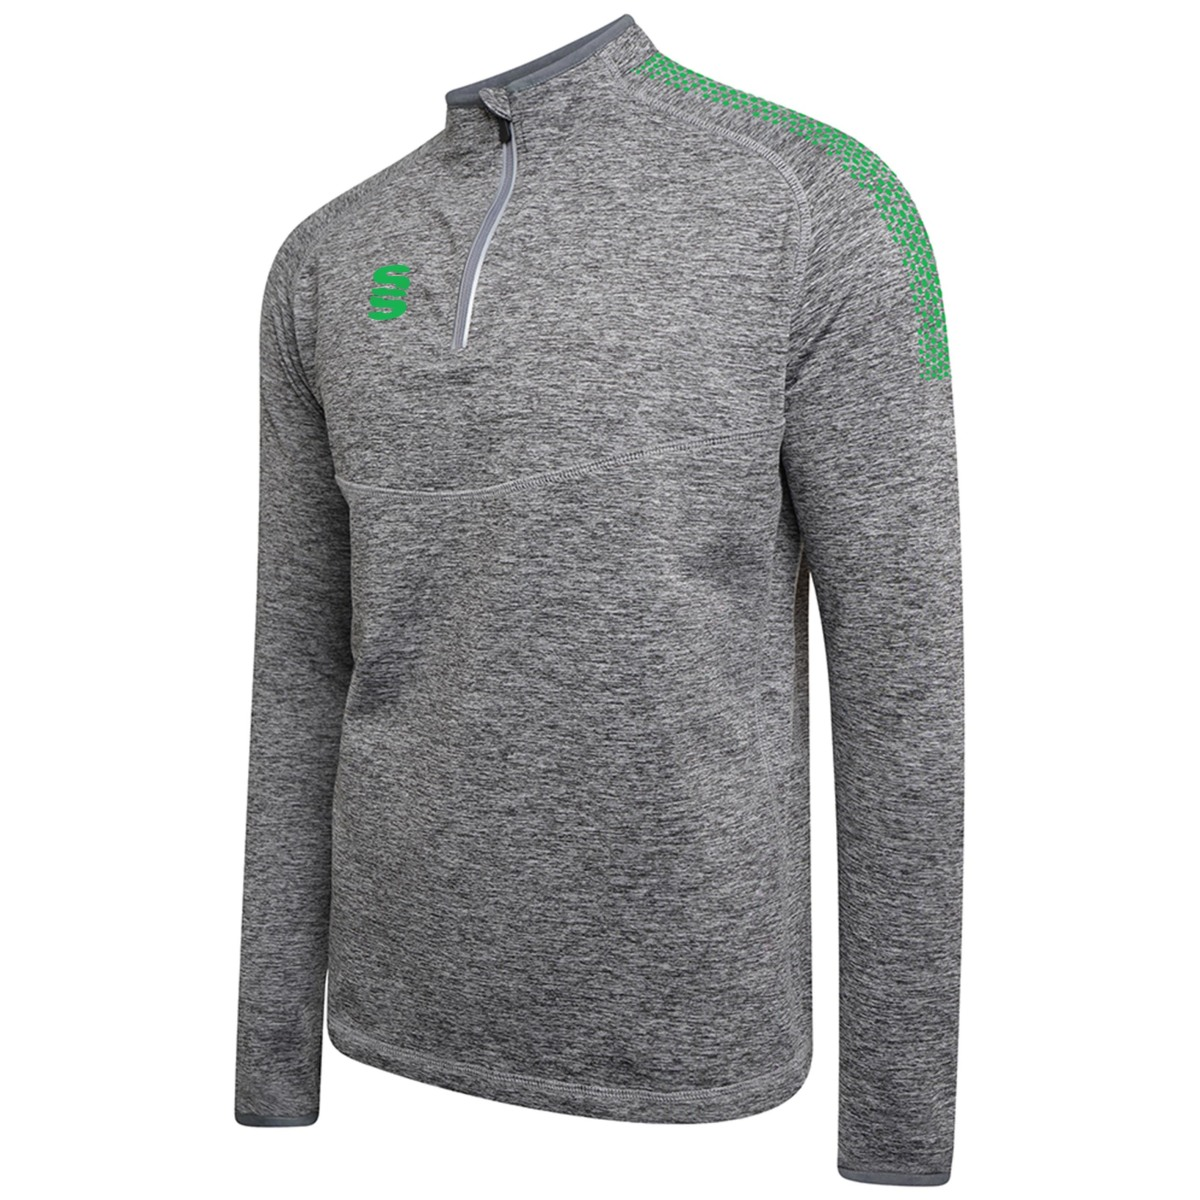 Dual Quarter Zip Top